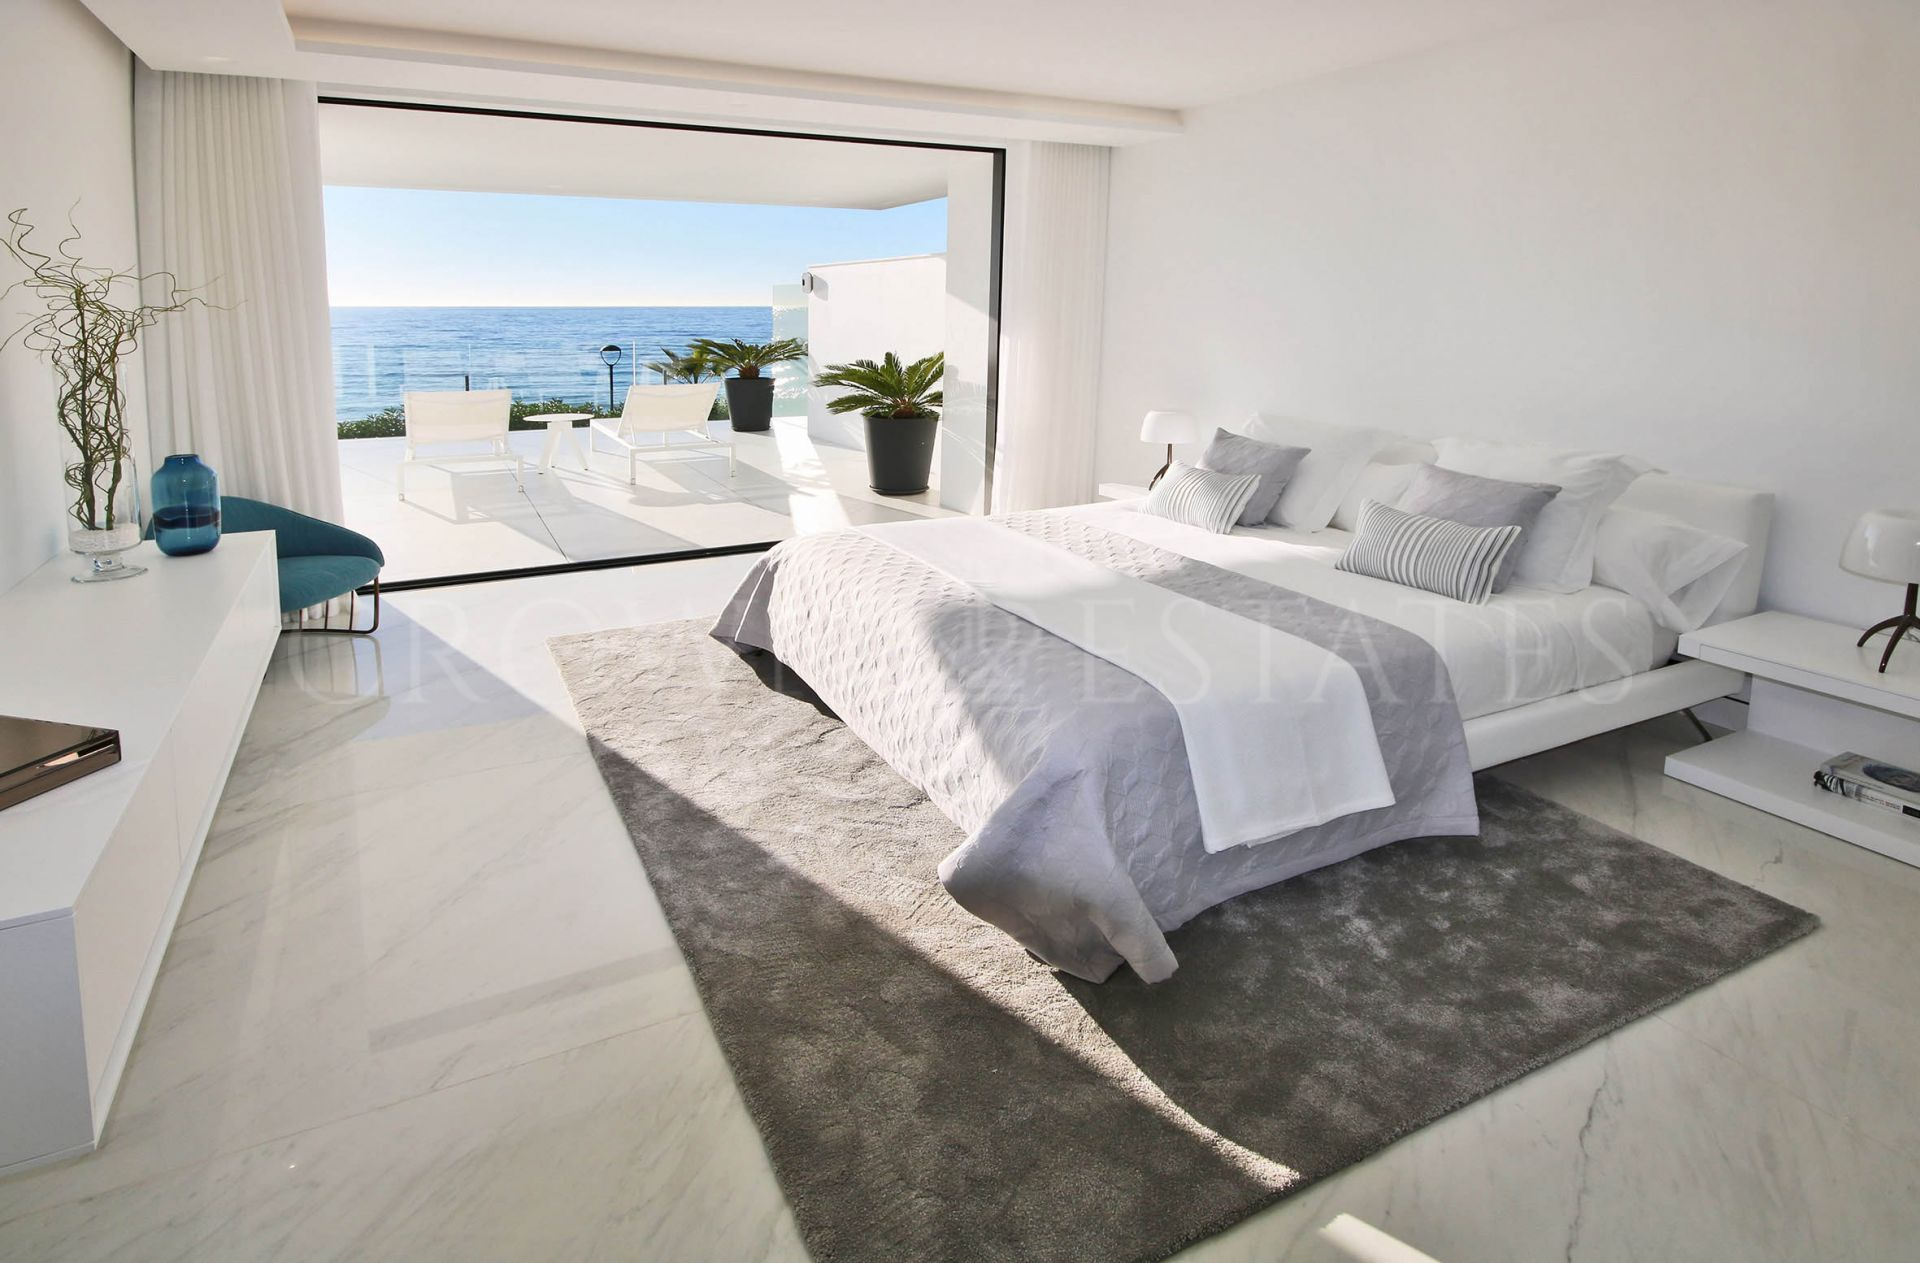 Emare, 28 impressive luxury apartments front line beach in the New Golden Mile